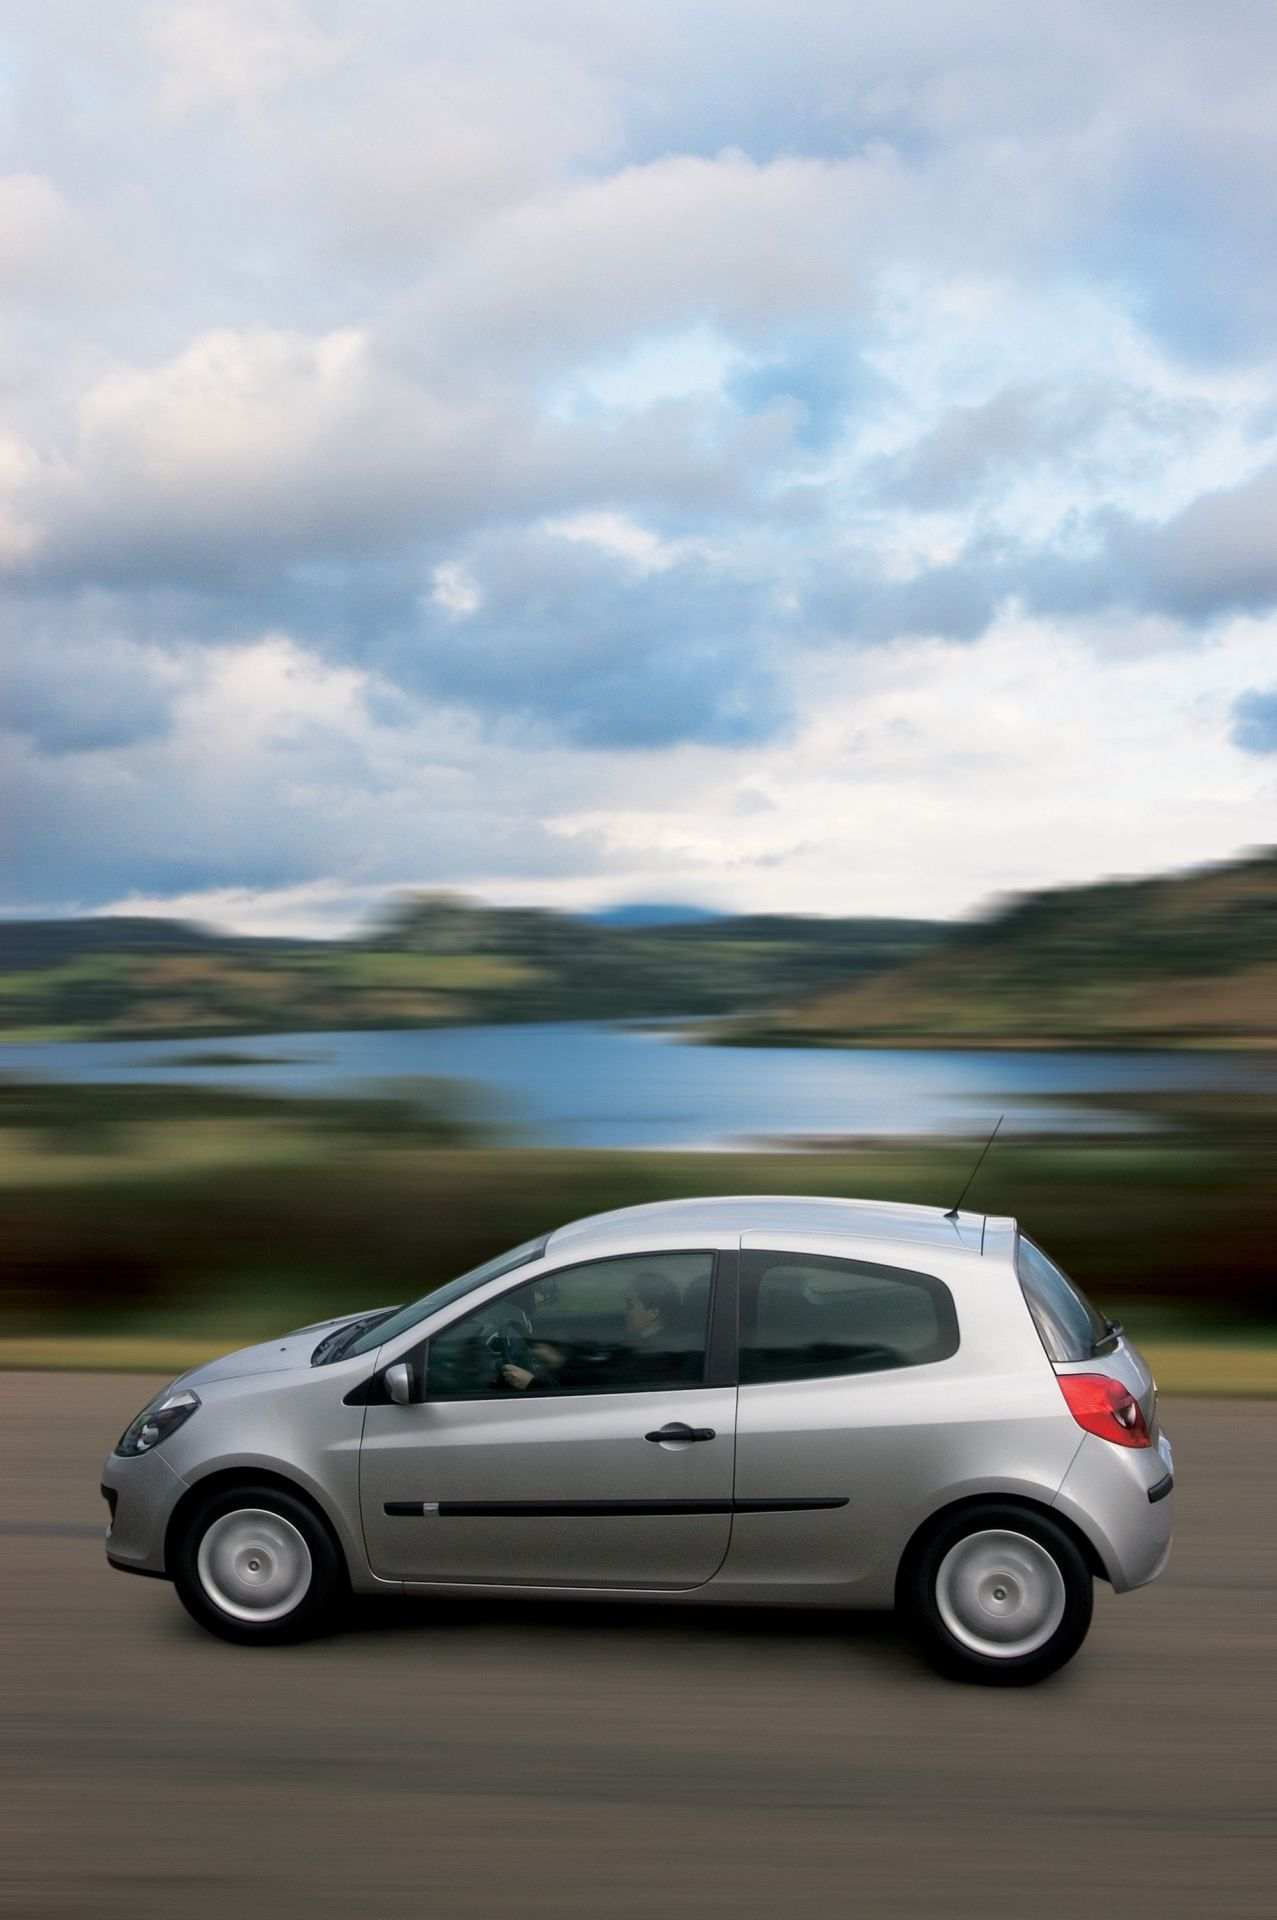 2020-30-years-of-Renault-CLIO-Renault-CLIO-III-2005-2012-4